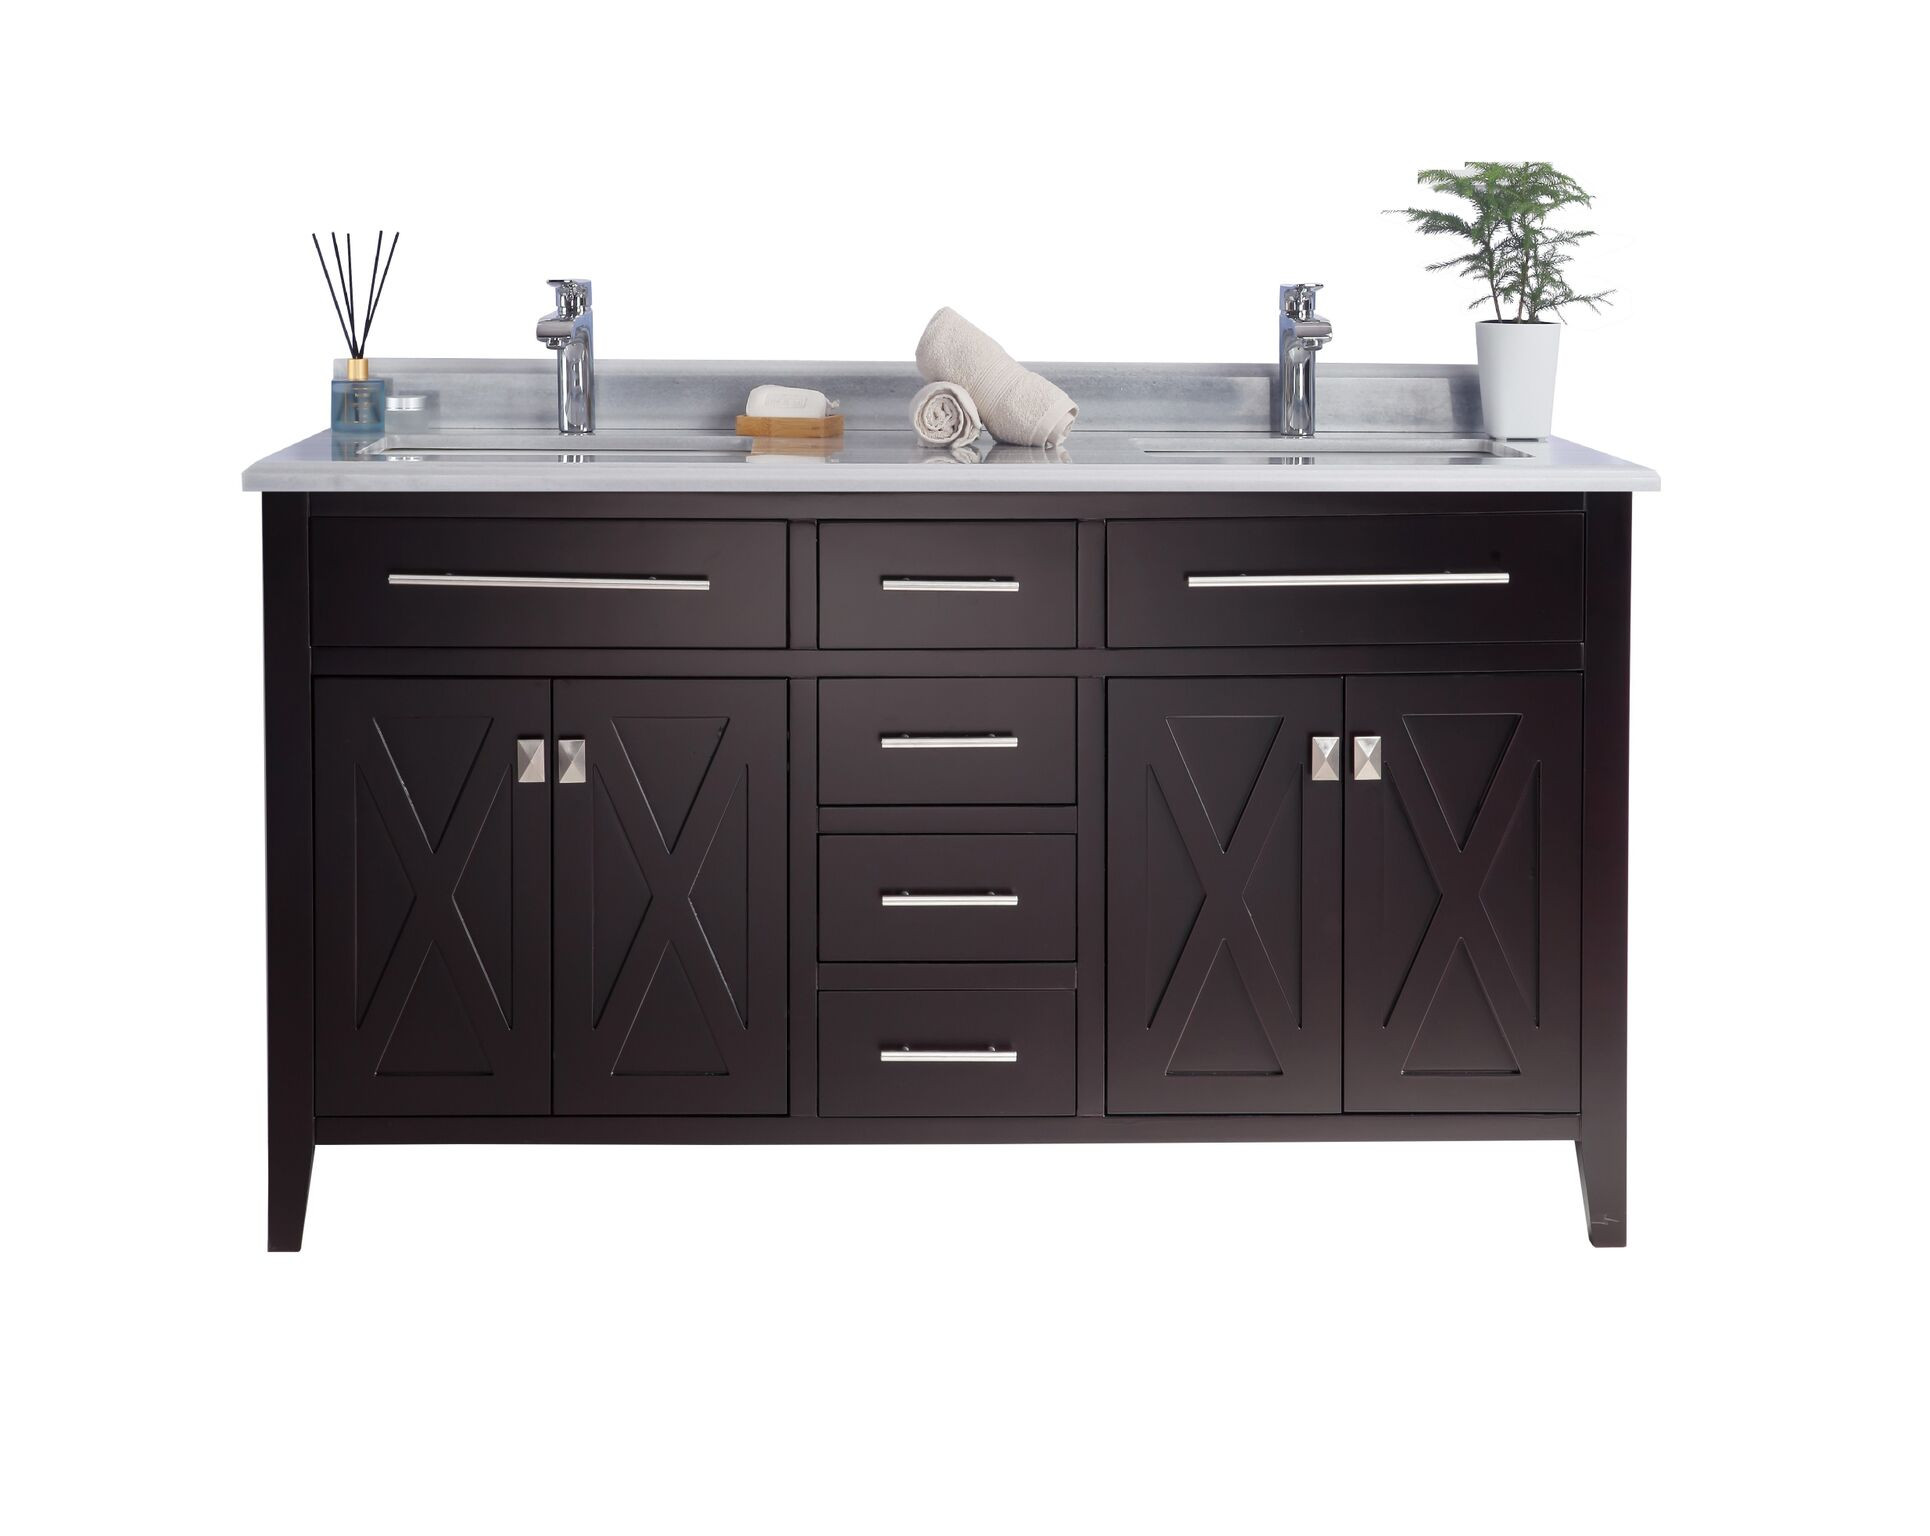 Laviva 313YG319-60B-WS Wimbledon Vanity In Brown With White Stripes Counter